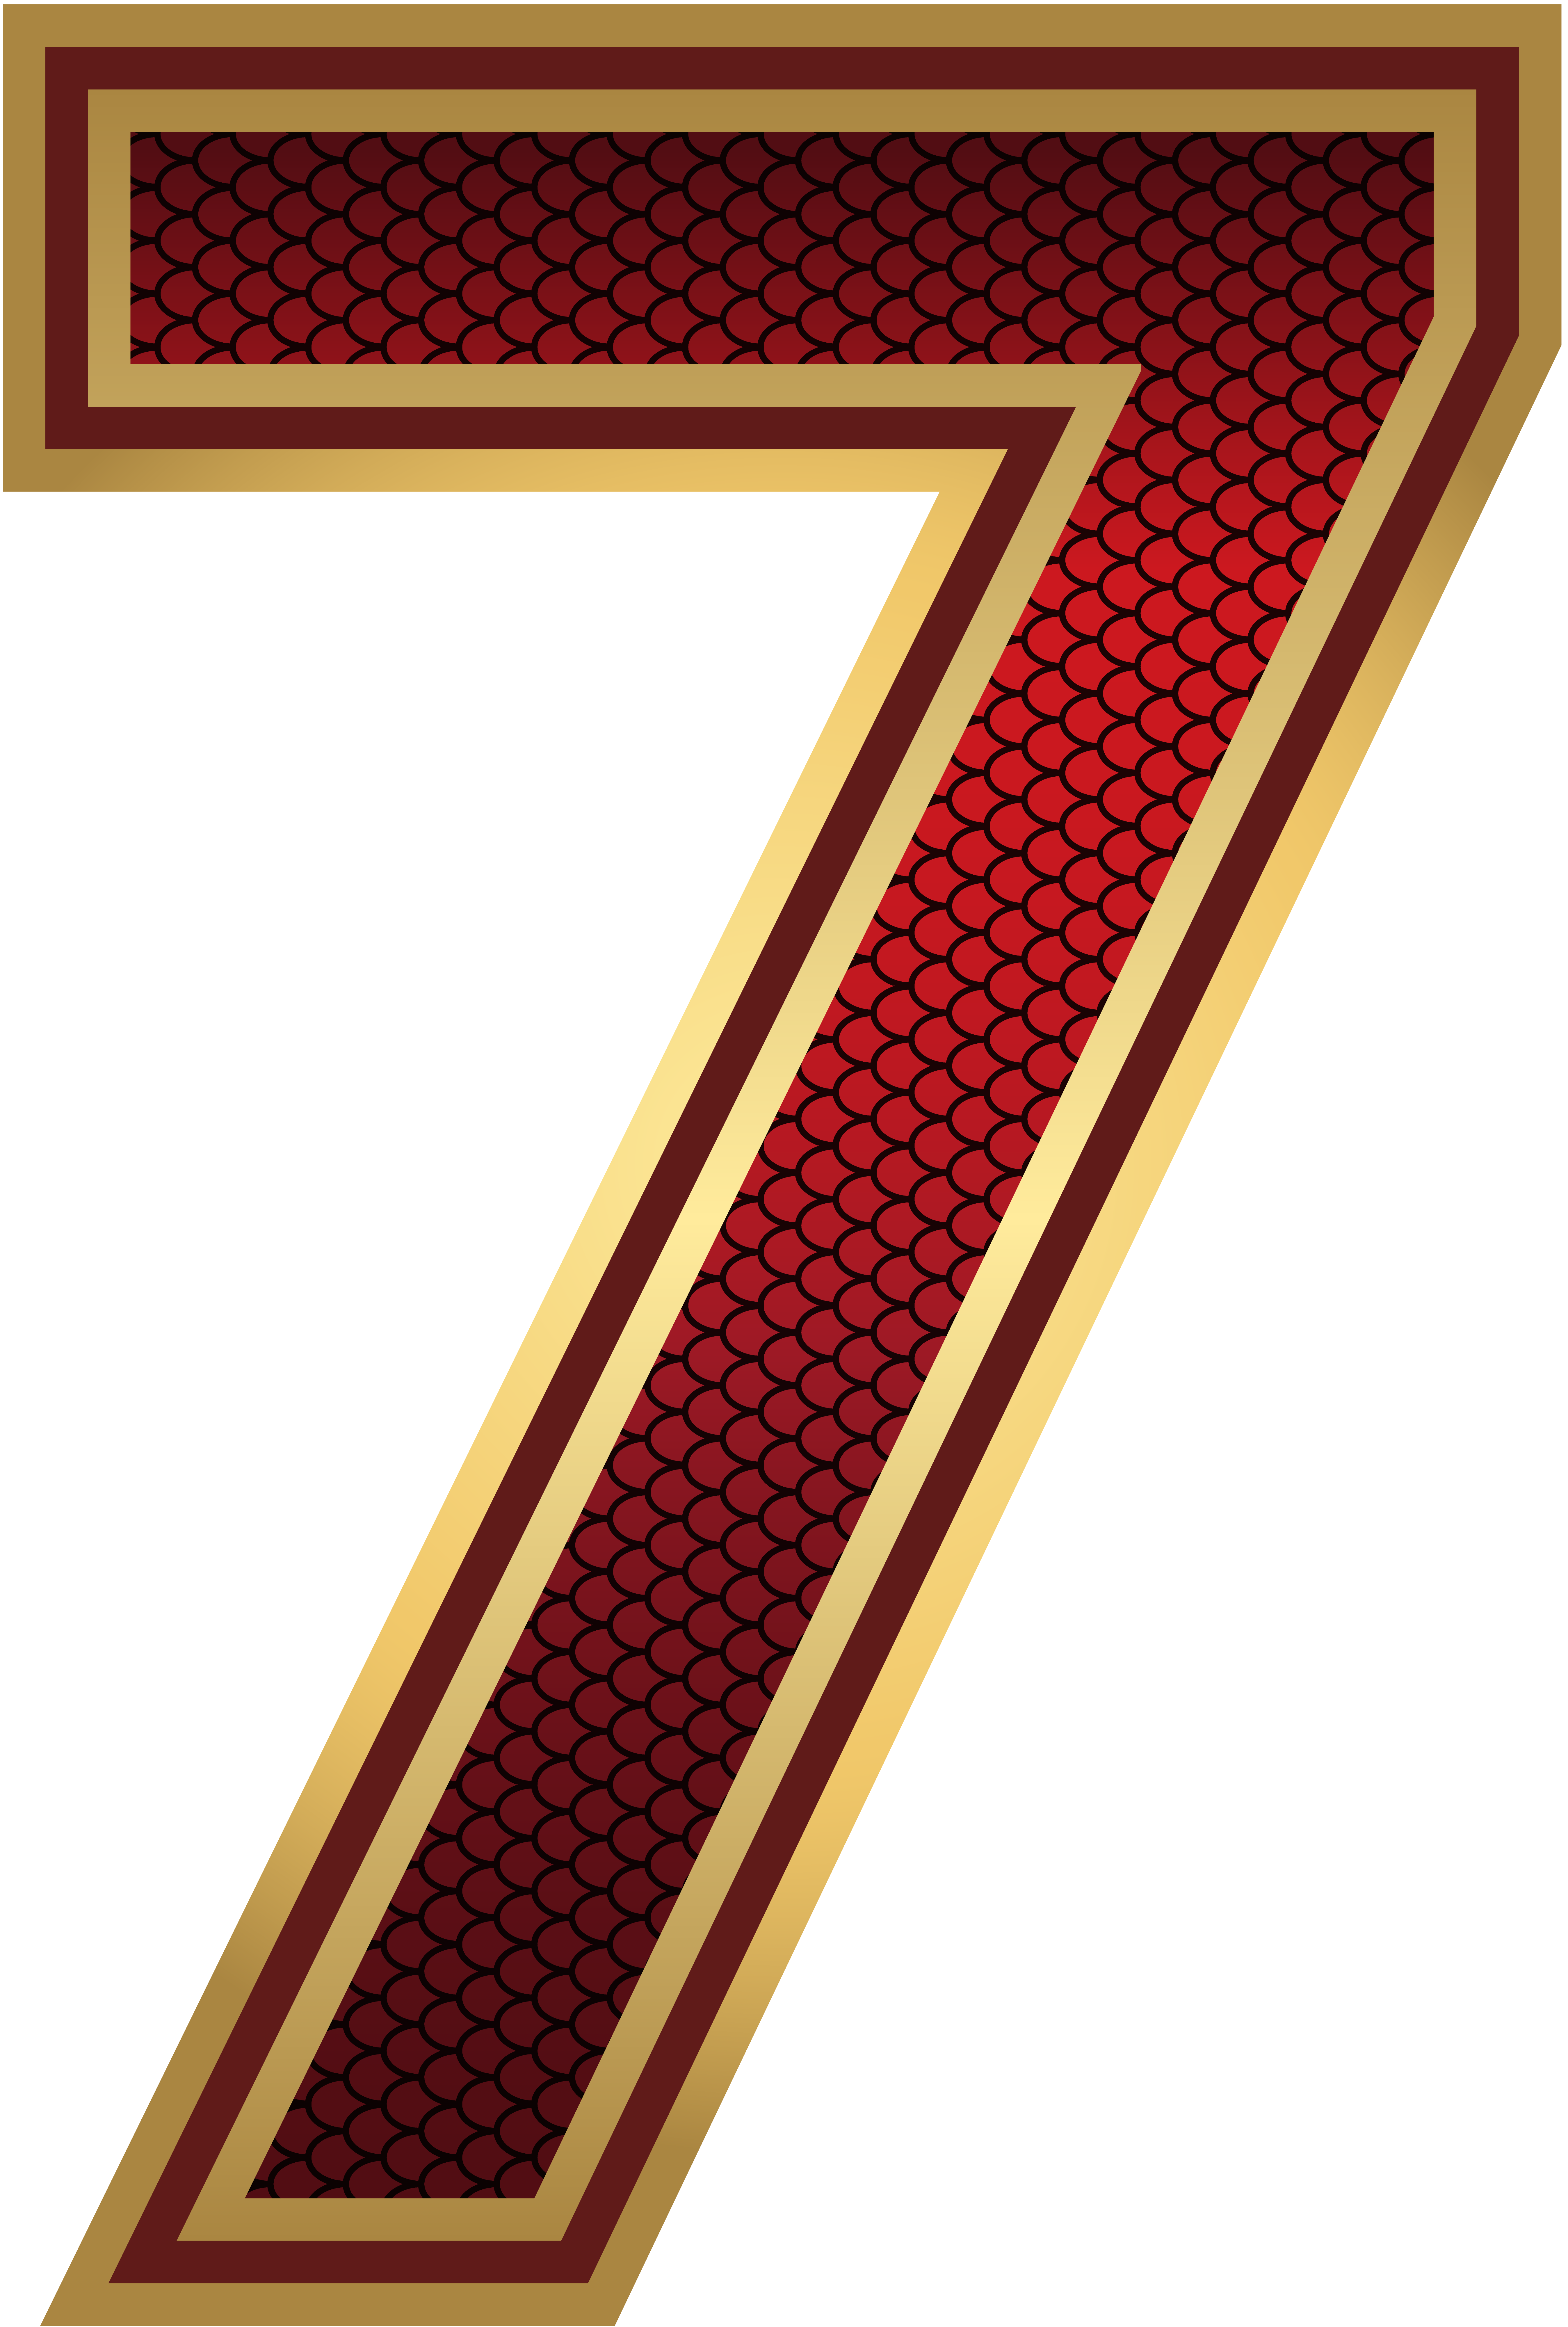 Red And Gold Number Seven Png Image Gallery Yopriceville High Quality Images And Transparent Png Free Clipart Numbers Font Red And Gold Png Images